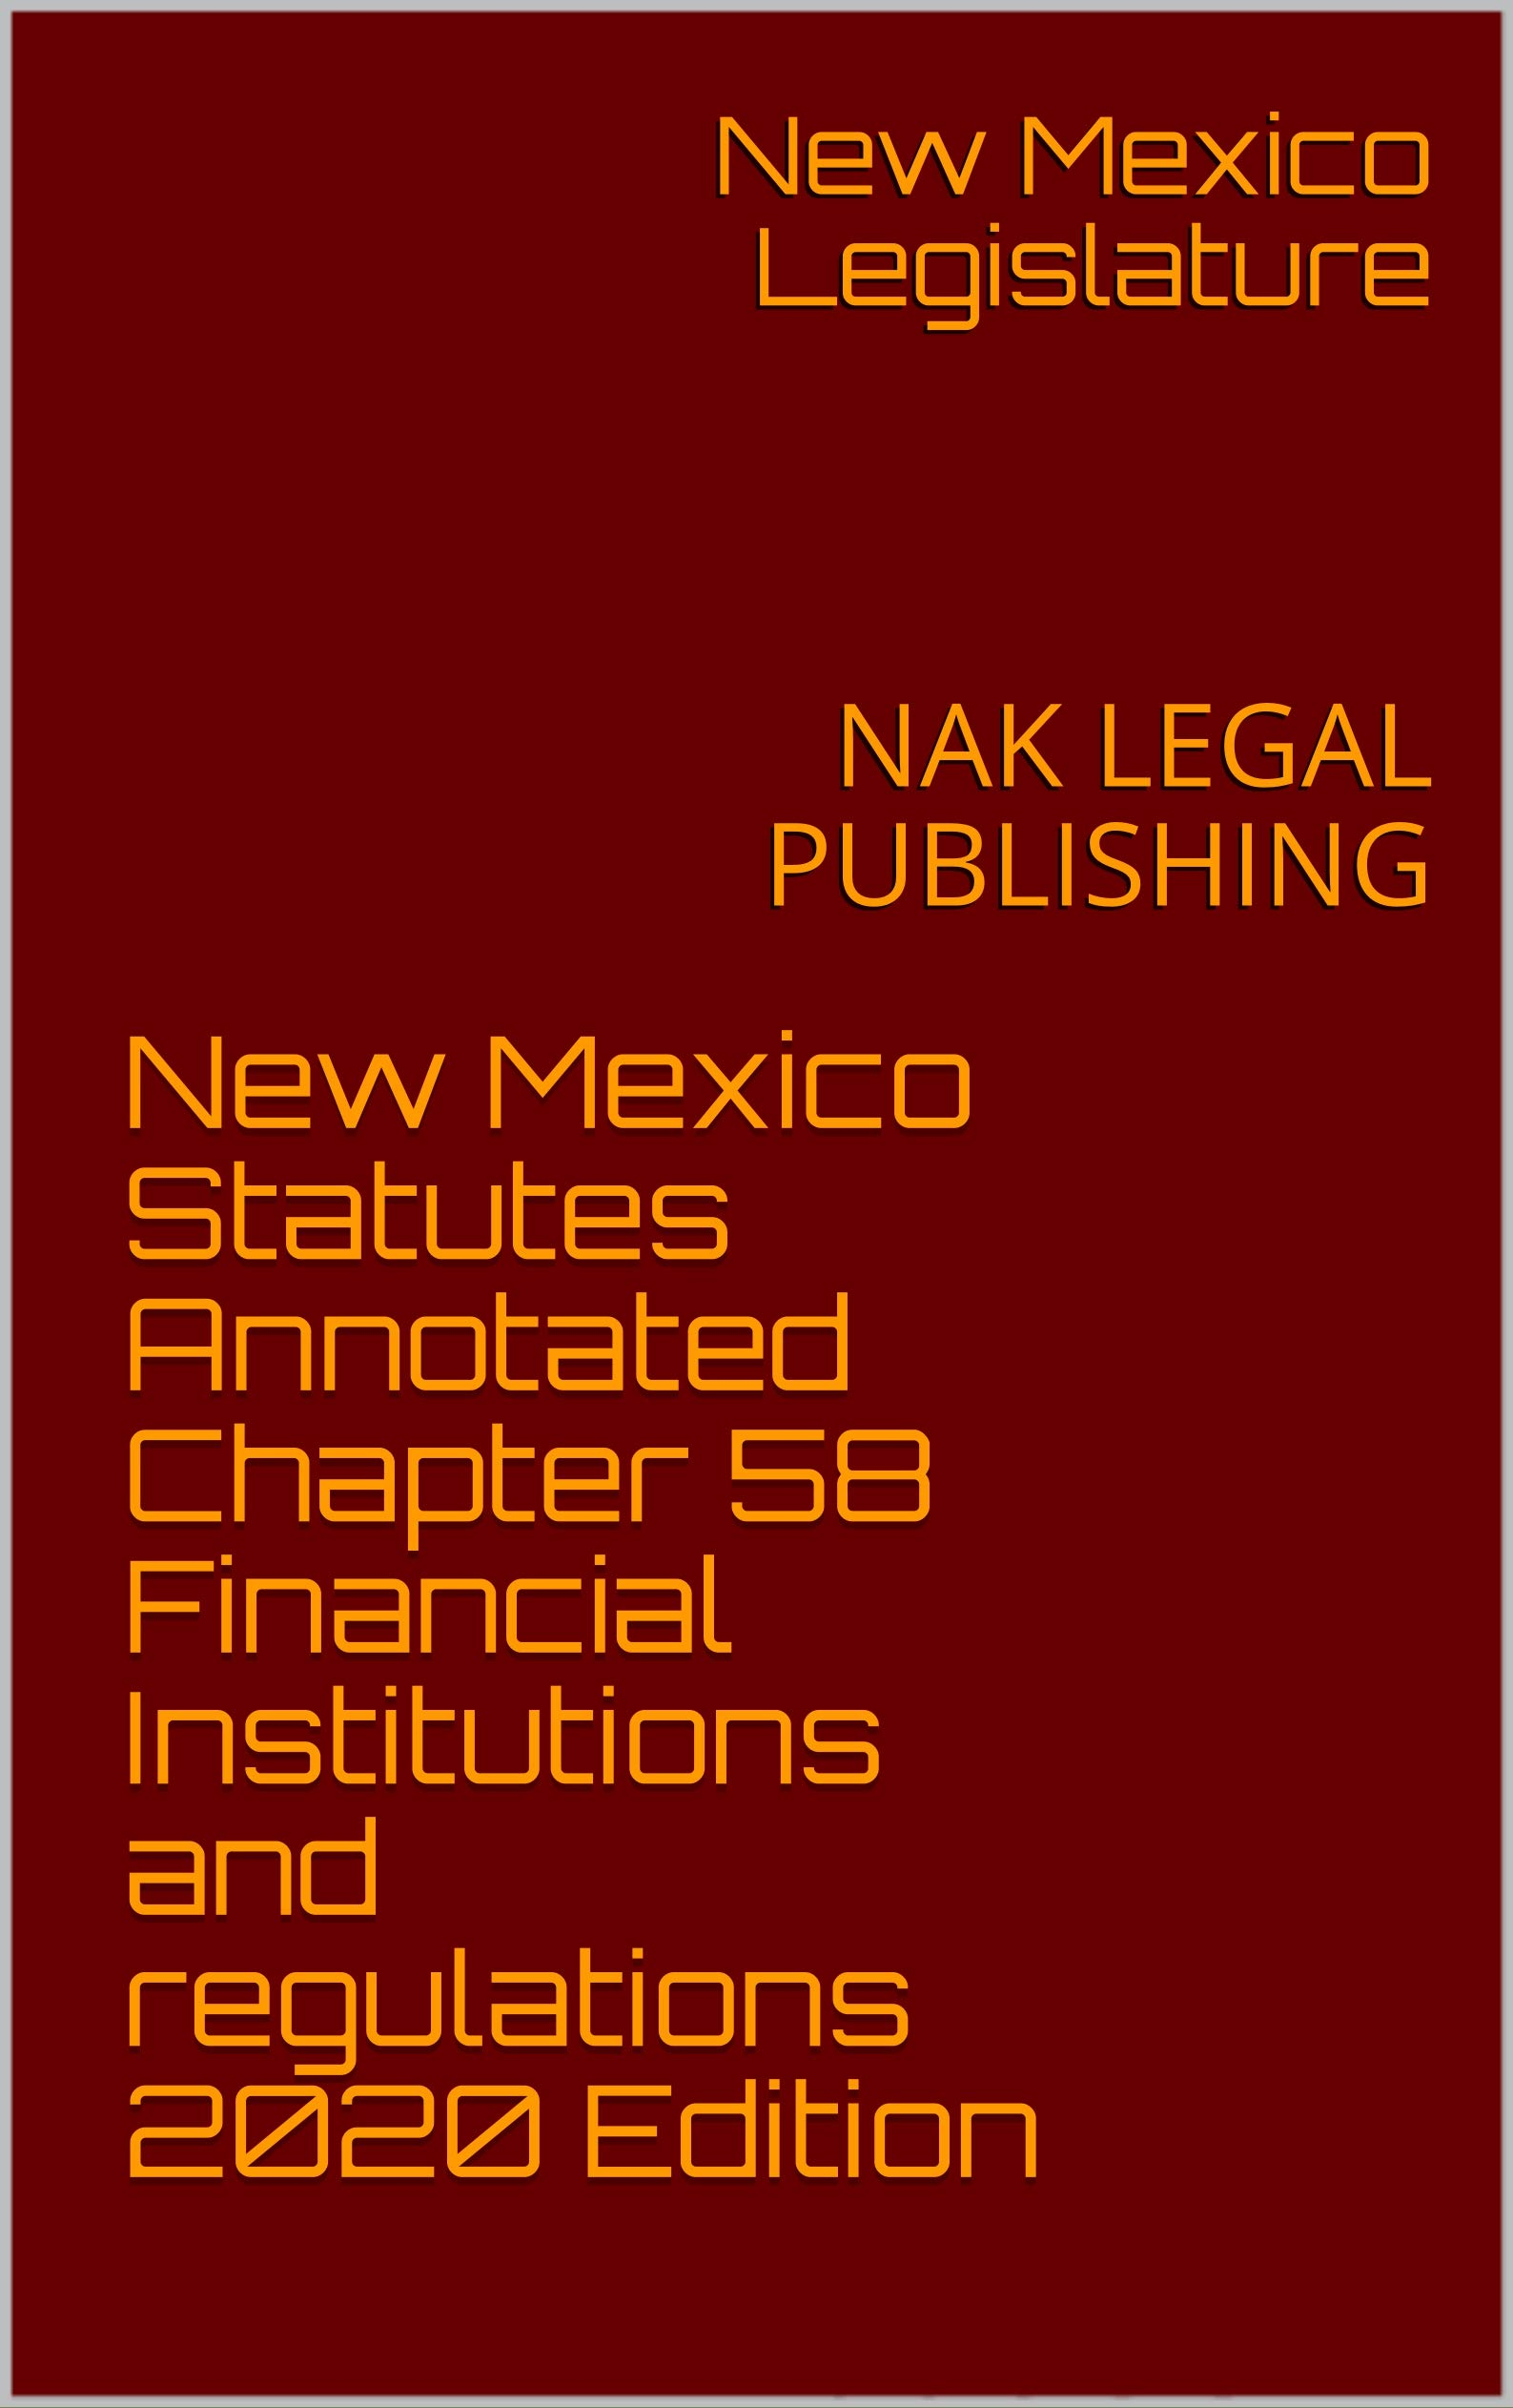 New Mexico Statutes Annotated Chapter 58 Financial Institutions and regulations 2020 Edition: NAK LEGAL PUBLISHING